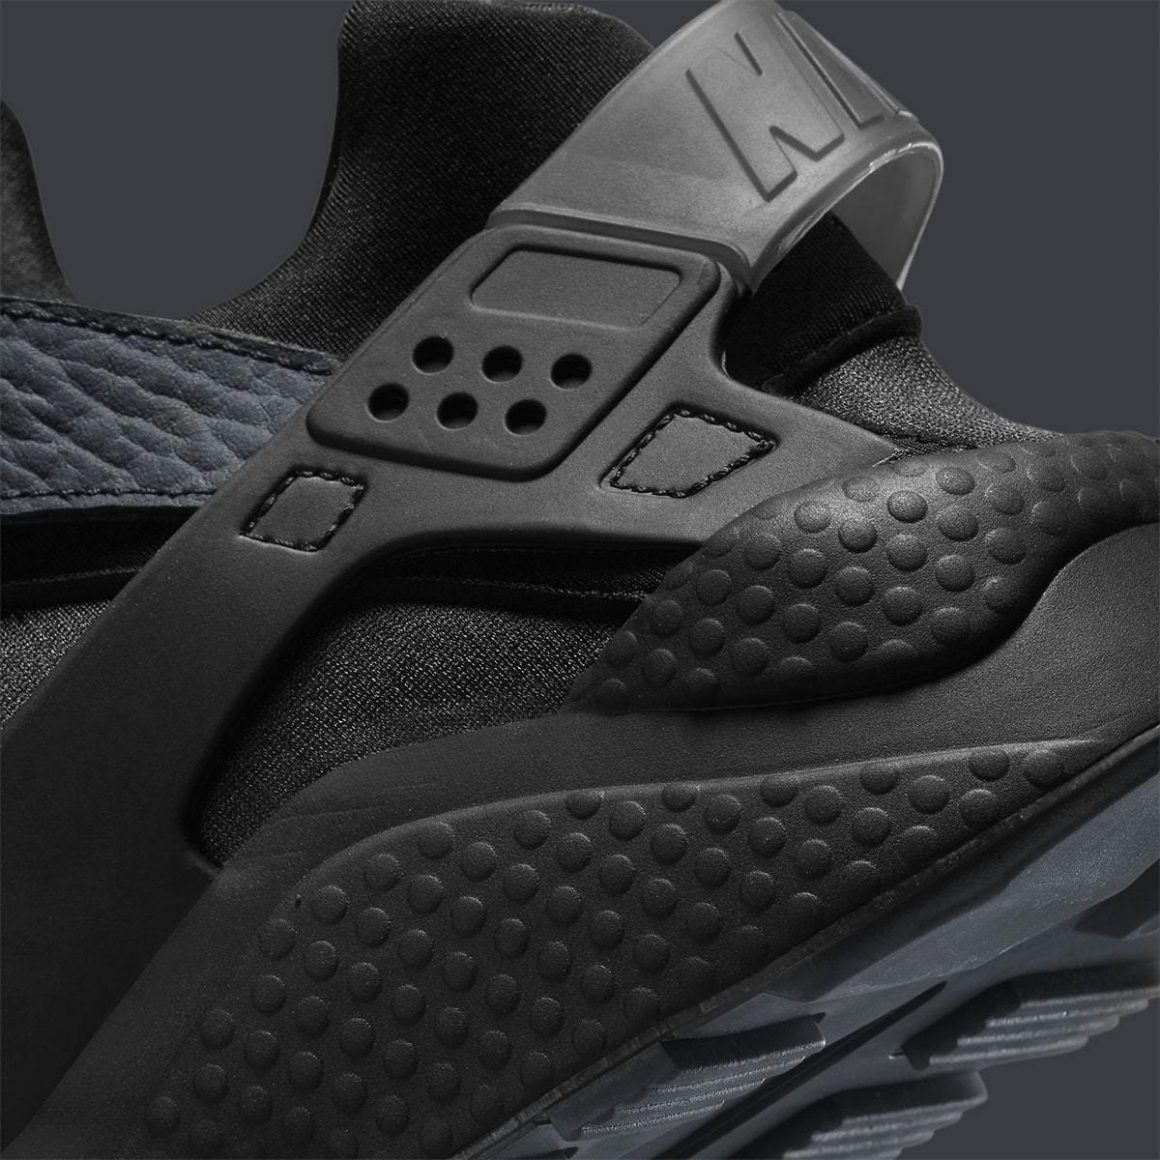 Nike Air Huarache ''Have You Hugged Your Foot Today?'' - DJ6890-001